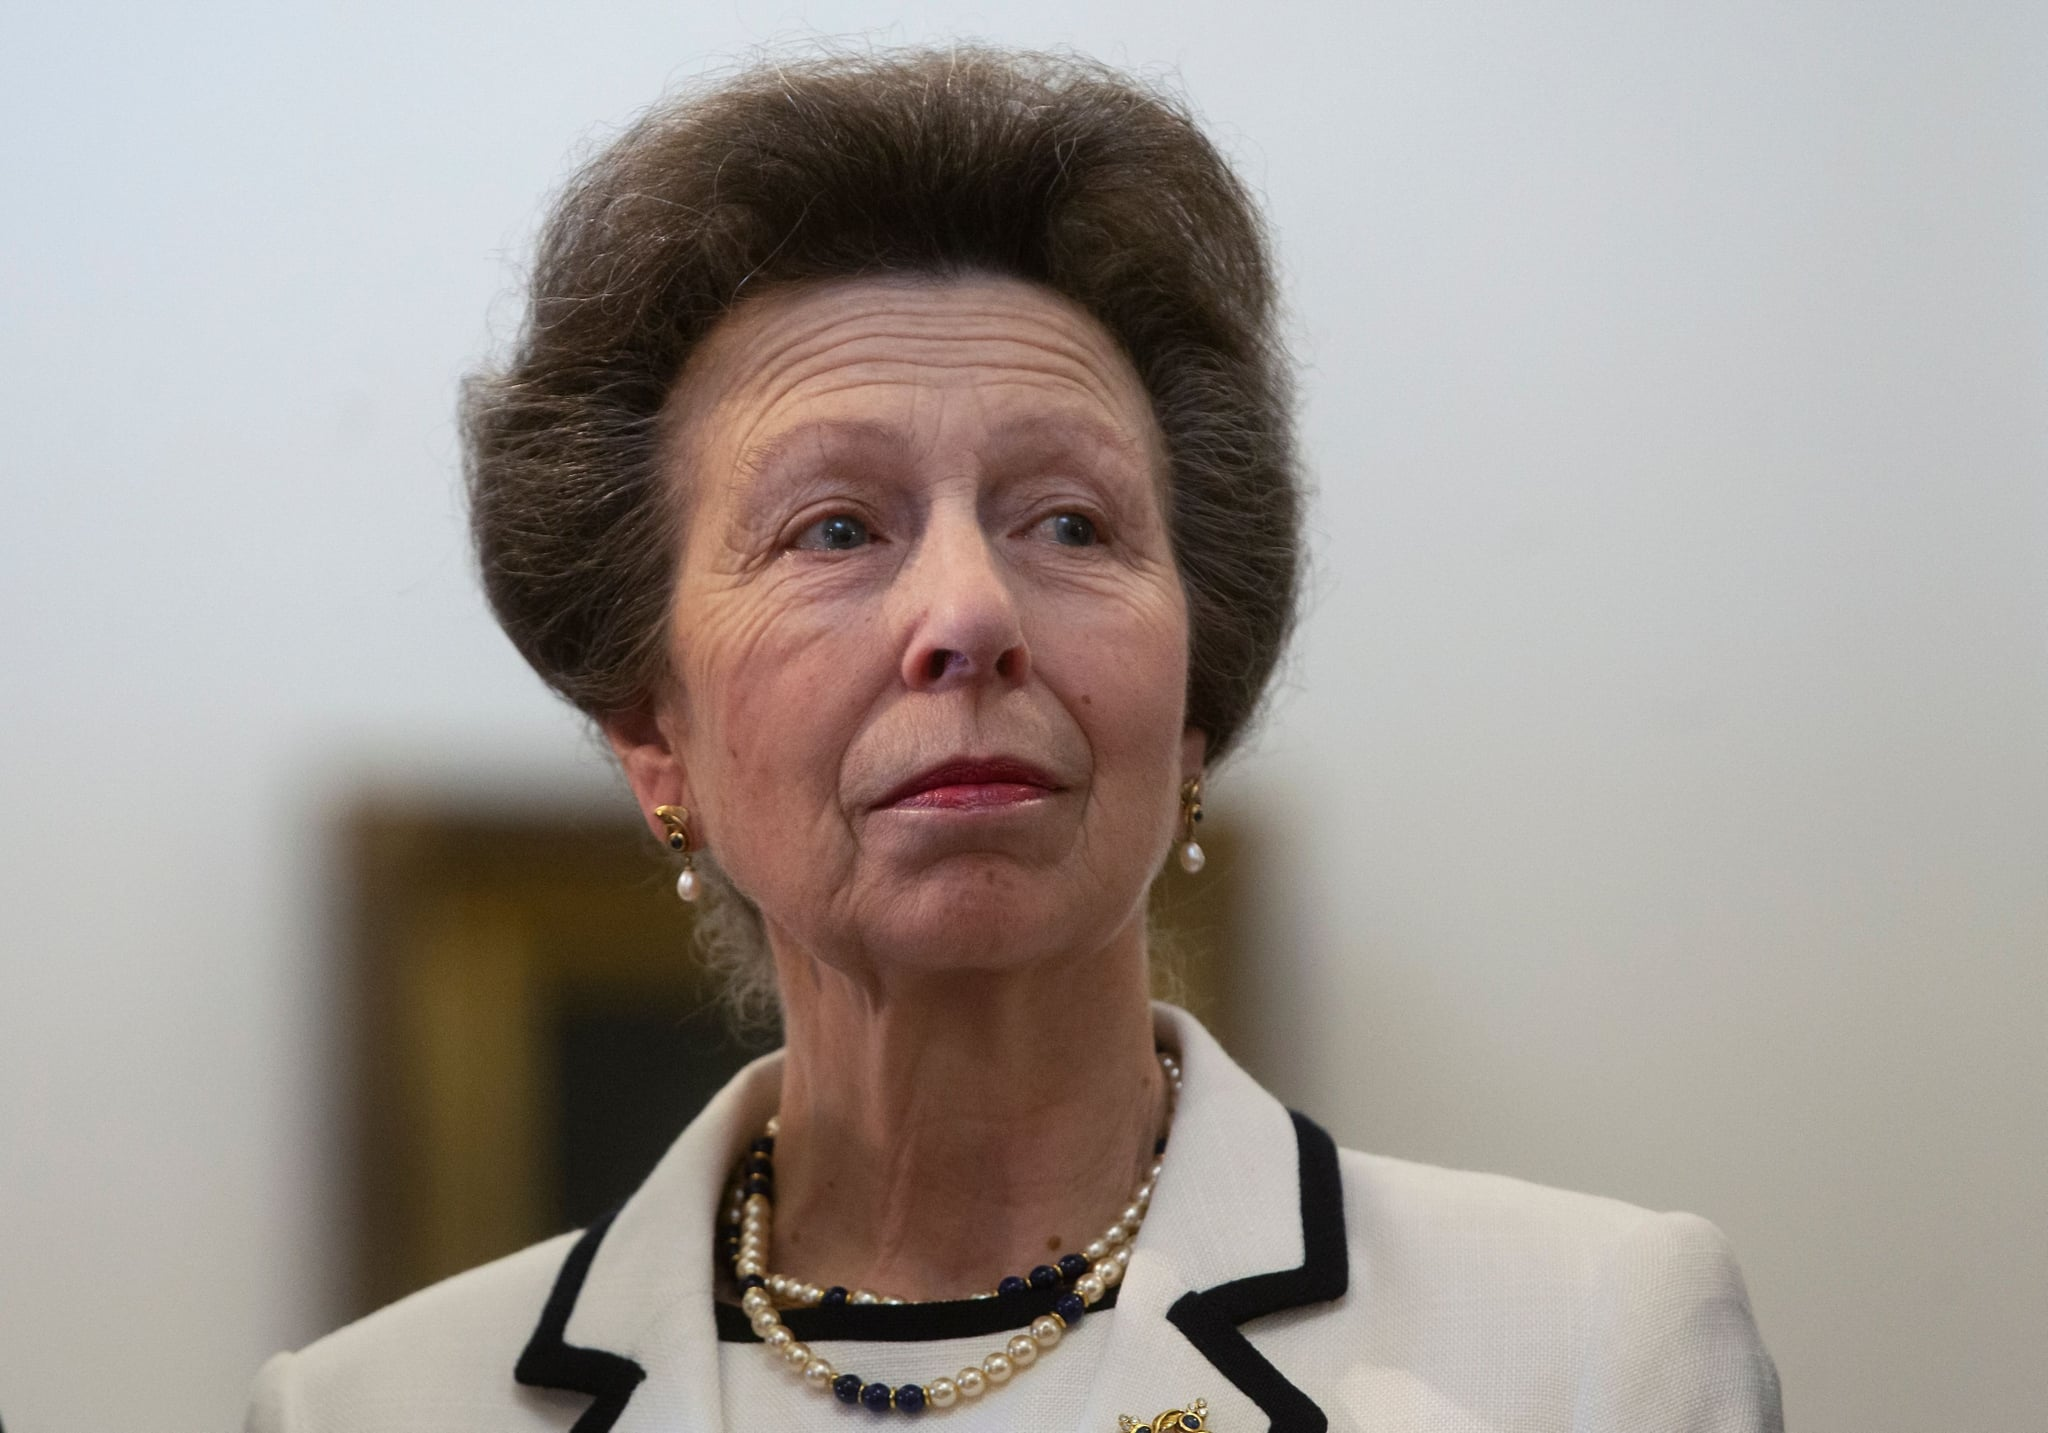 Britain's Princess Anne, visits Chilean President Sebastian Pinera (out of frame) at La Moneda Presidential Palace in Santiago on November 28, 2018. - Princess Anne arrived in Santiago for a five-day visit for the celebrations of the bicentennial of the Chilean Navy. (Photo by CLAUDIO REYES / AFP)        (Photo credit should read CLAUDIO REYES/AFP/Getty Images)